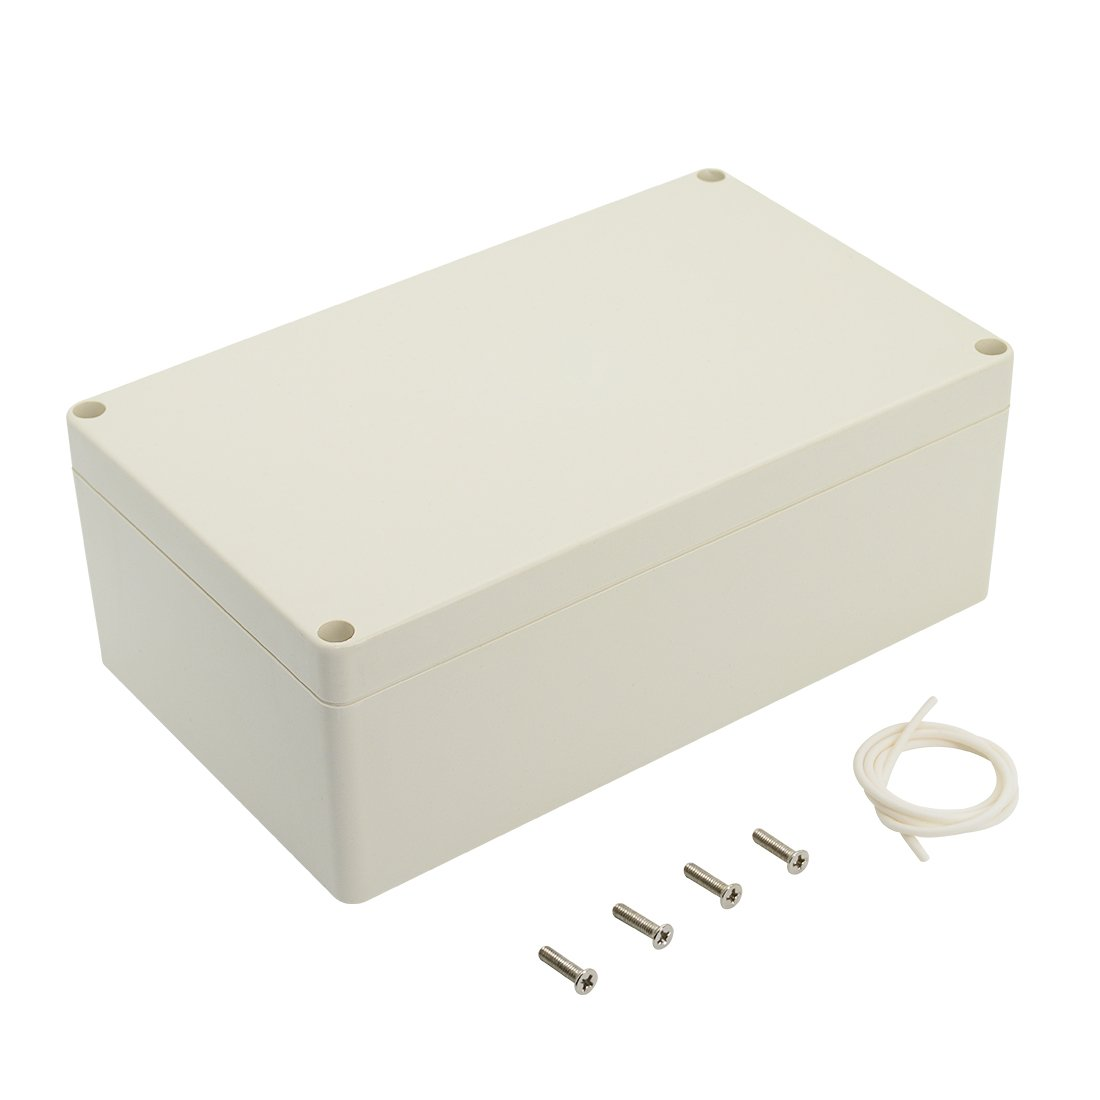 LeMotech ABS Plastic Electrical Project Case Power Junction Box Project Box White 7.87 x 4.72 x 2.95 200 x 120 x 75mm